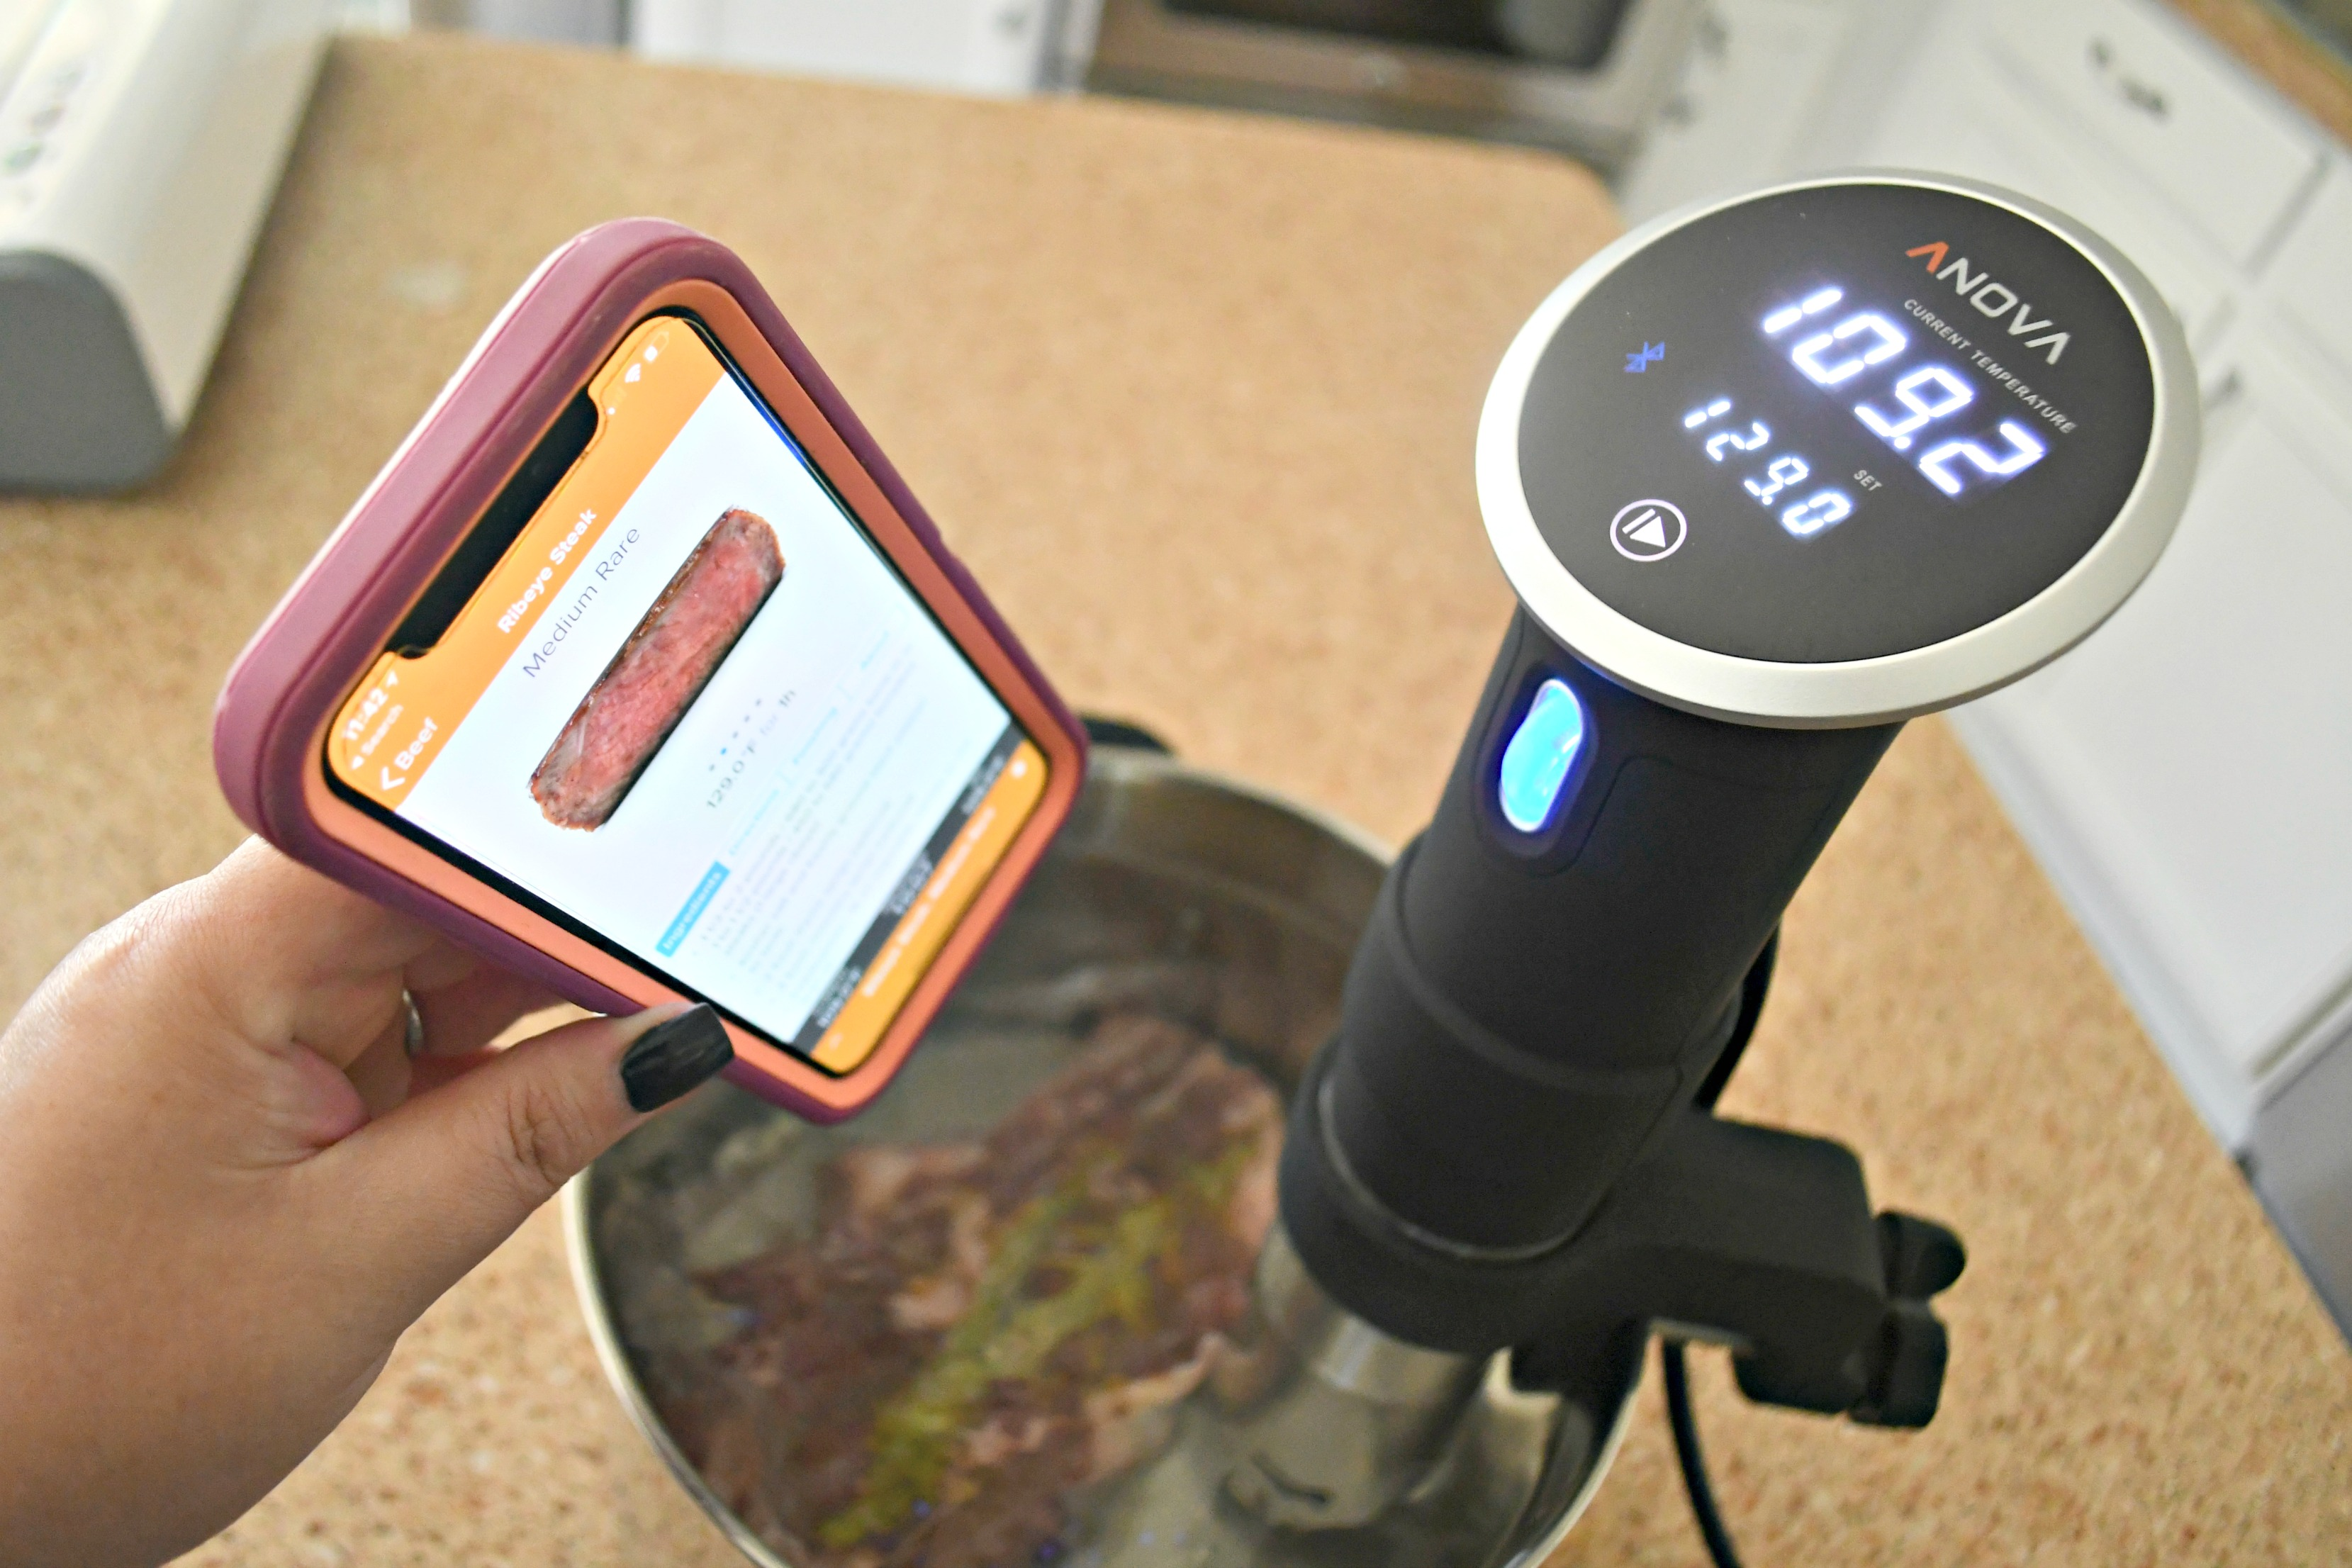 Make the Best Steak Using the Sous Vide method! Pictured here with the Sous Vide app